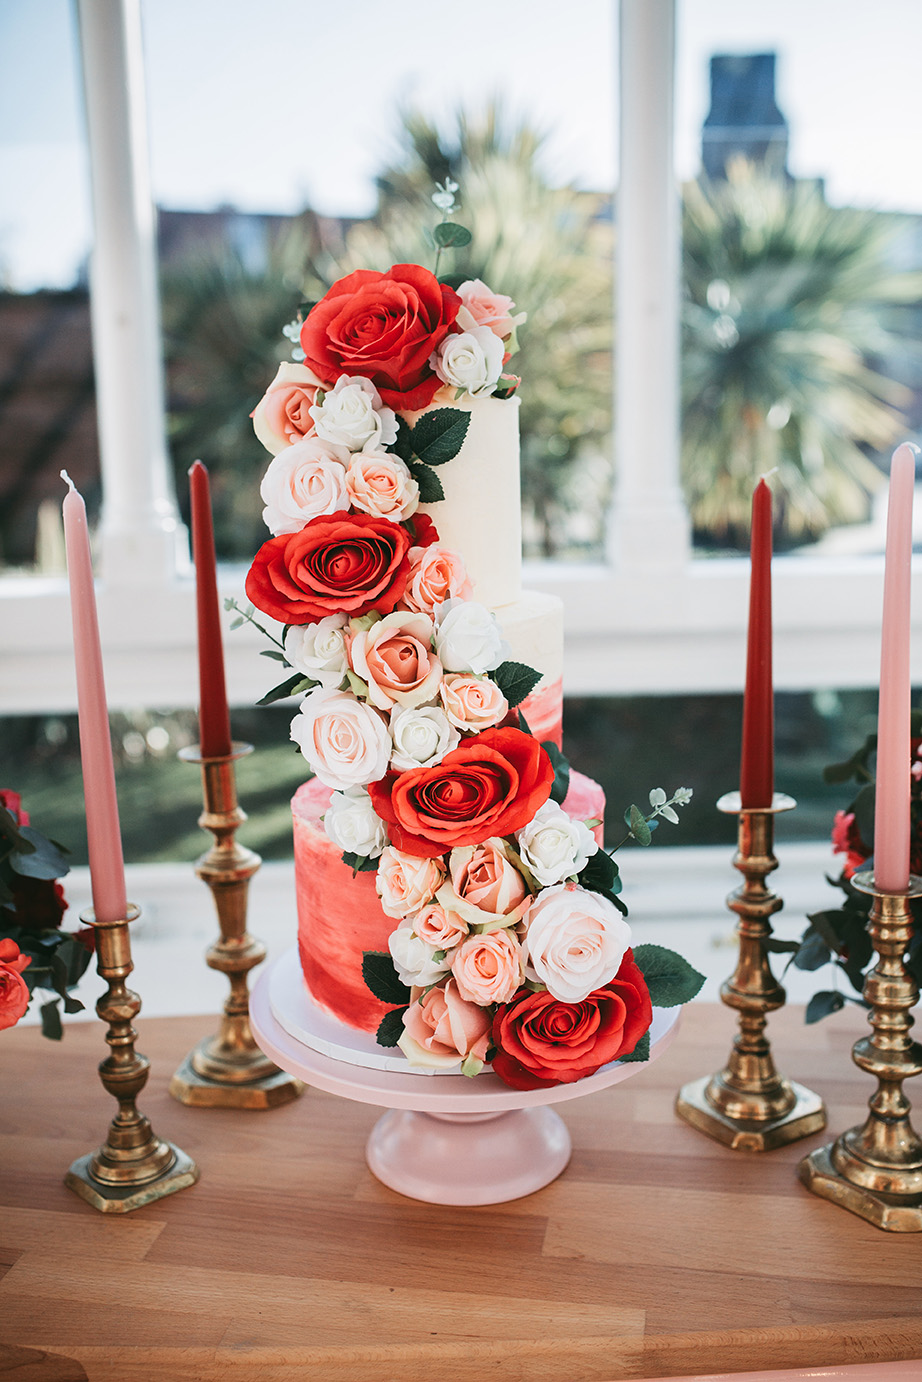 The wedding cake was an ombre red one, with lush red, pink and white blooms and greenery